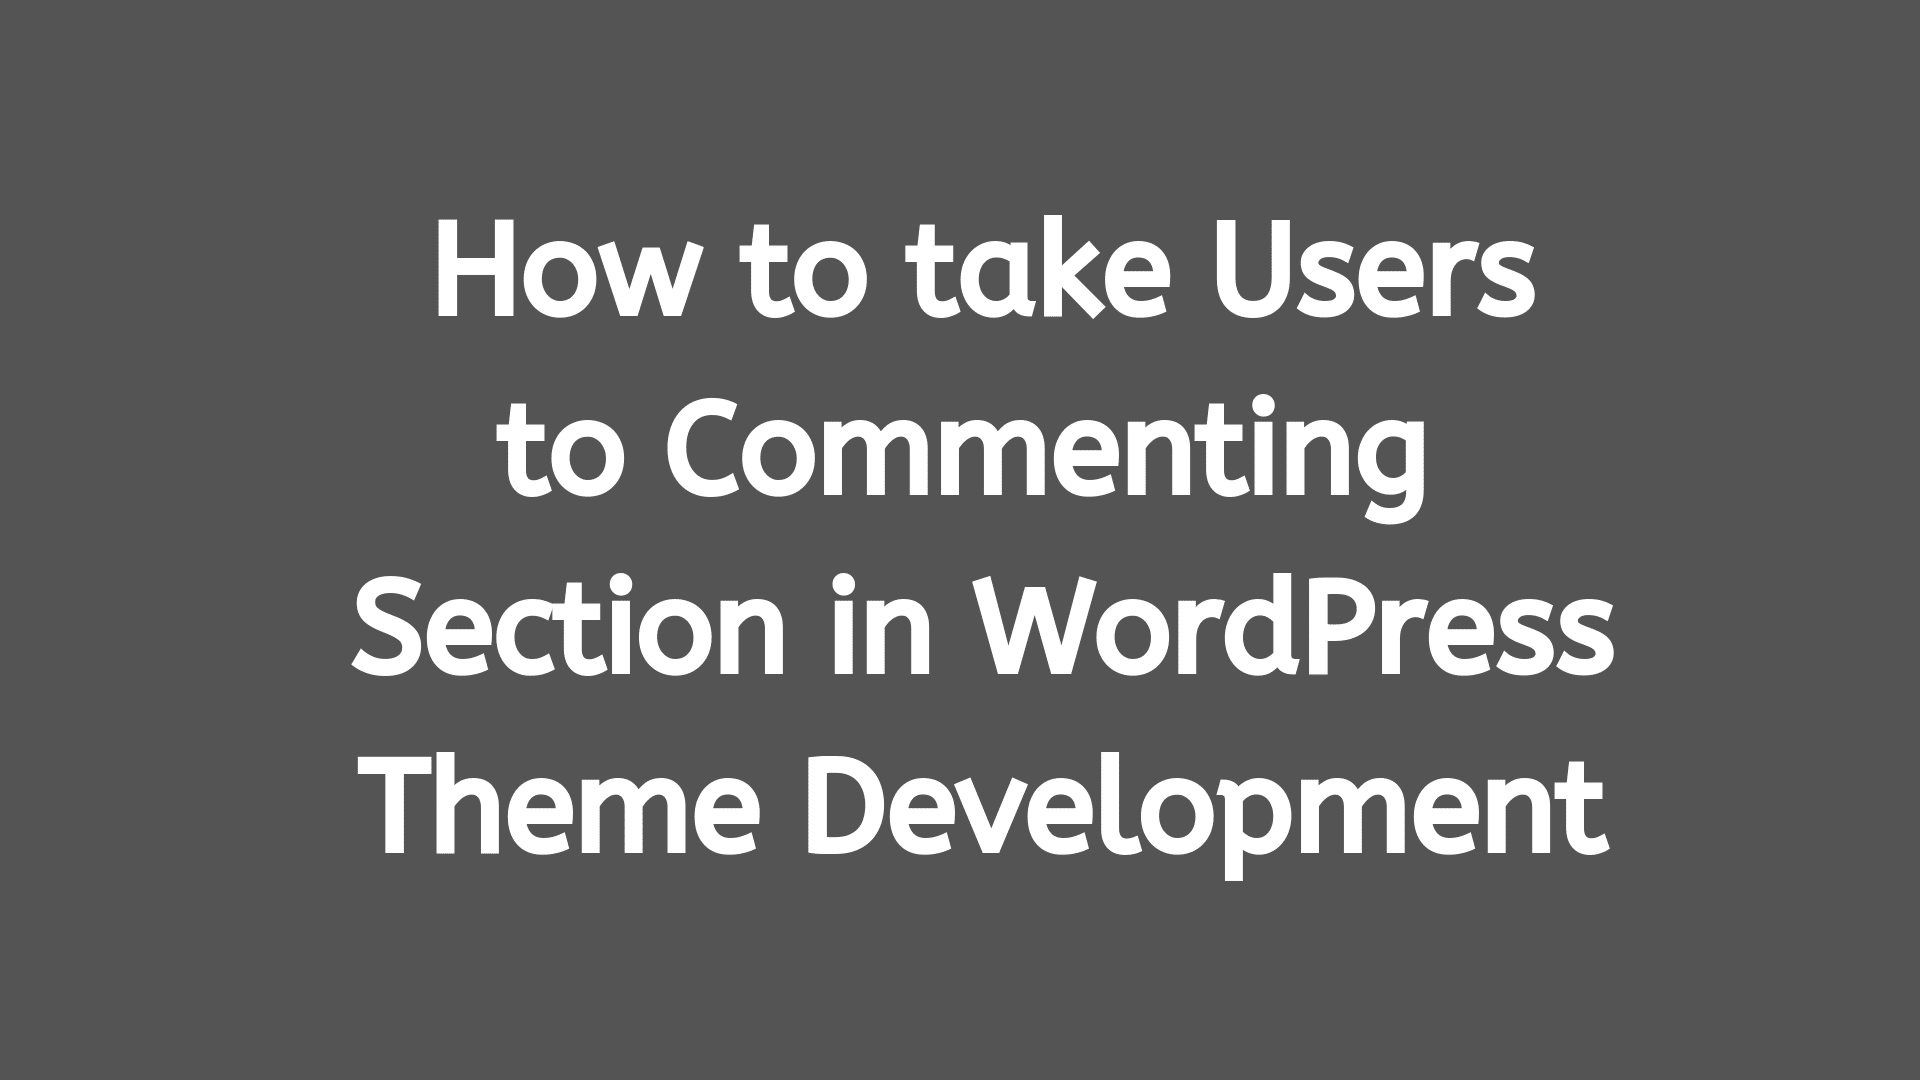 How to take users to the commenting section in WordPress theme development